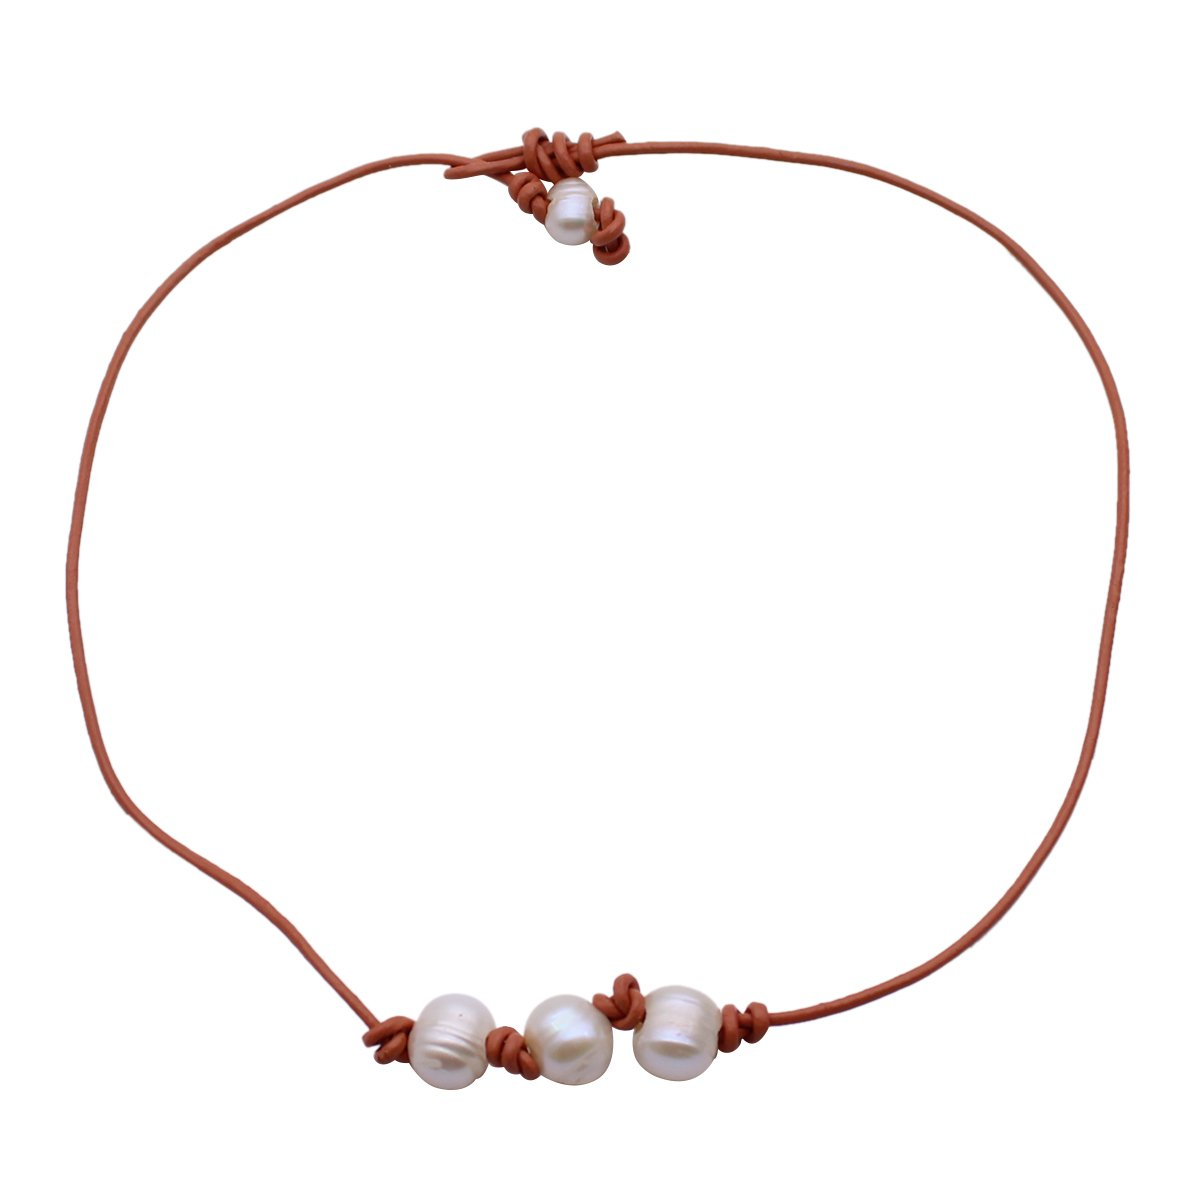 YIYIPRINCESS Pearl Leather Choker Summer Necklace Birthday Idea Gift for Women Girls (Brown 3 Pearl)